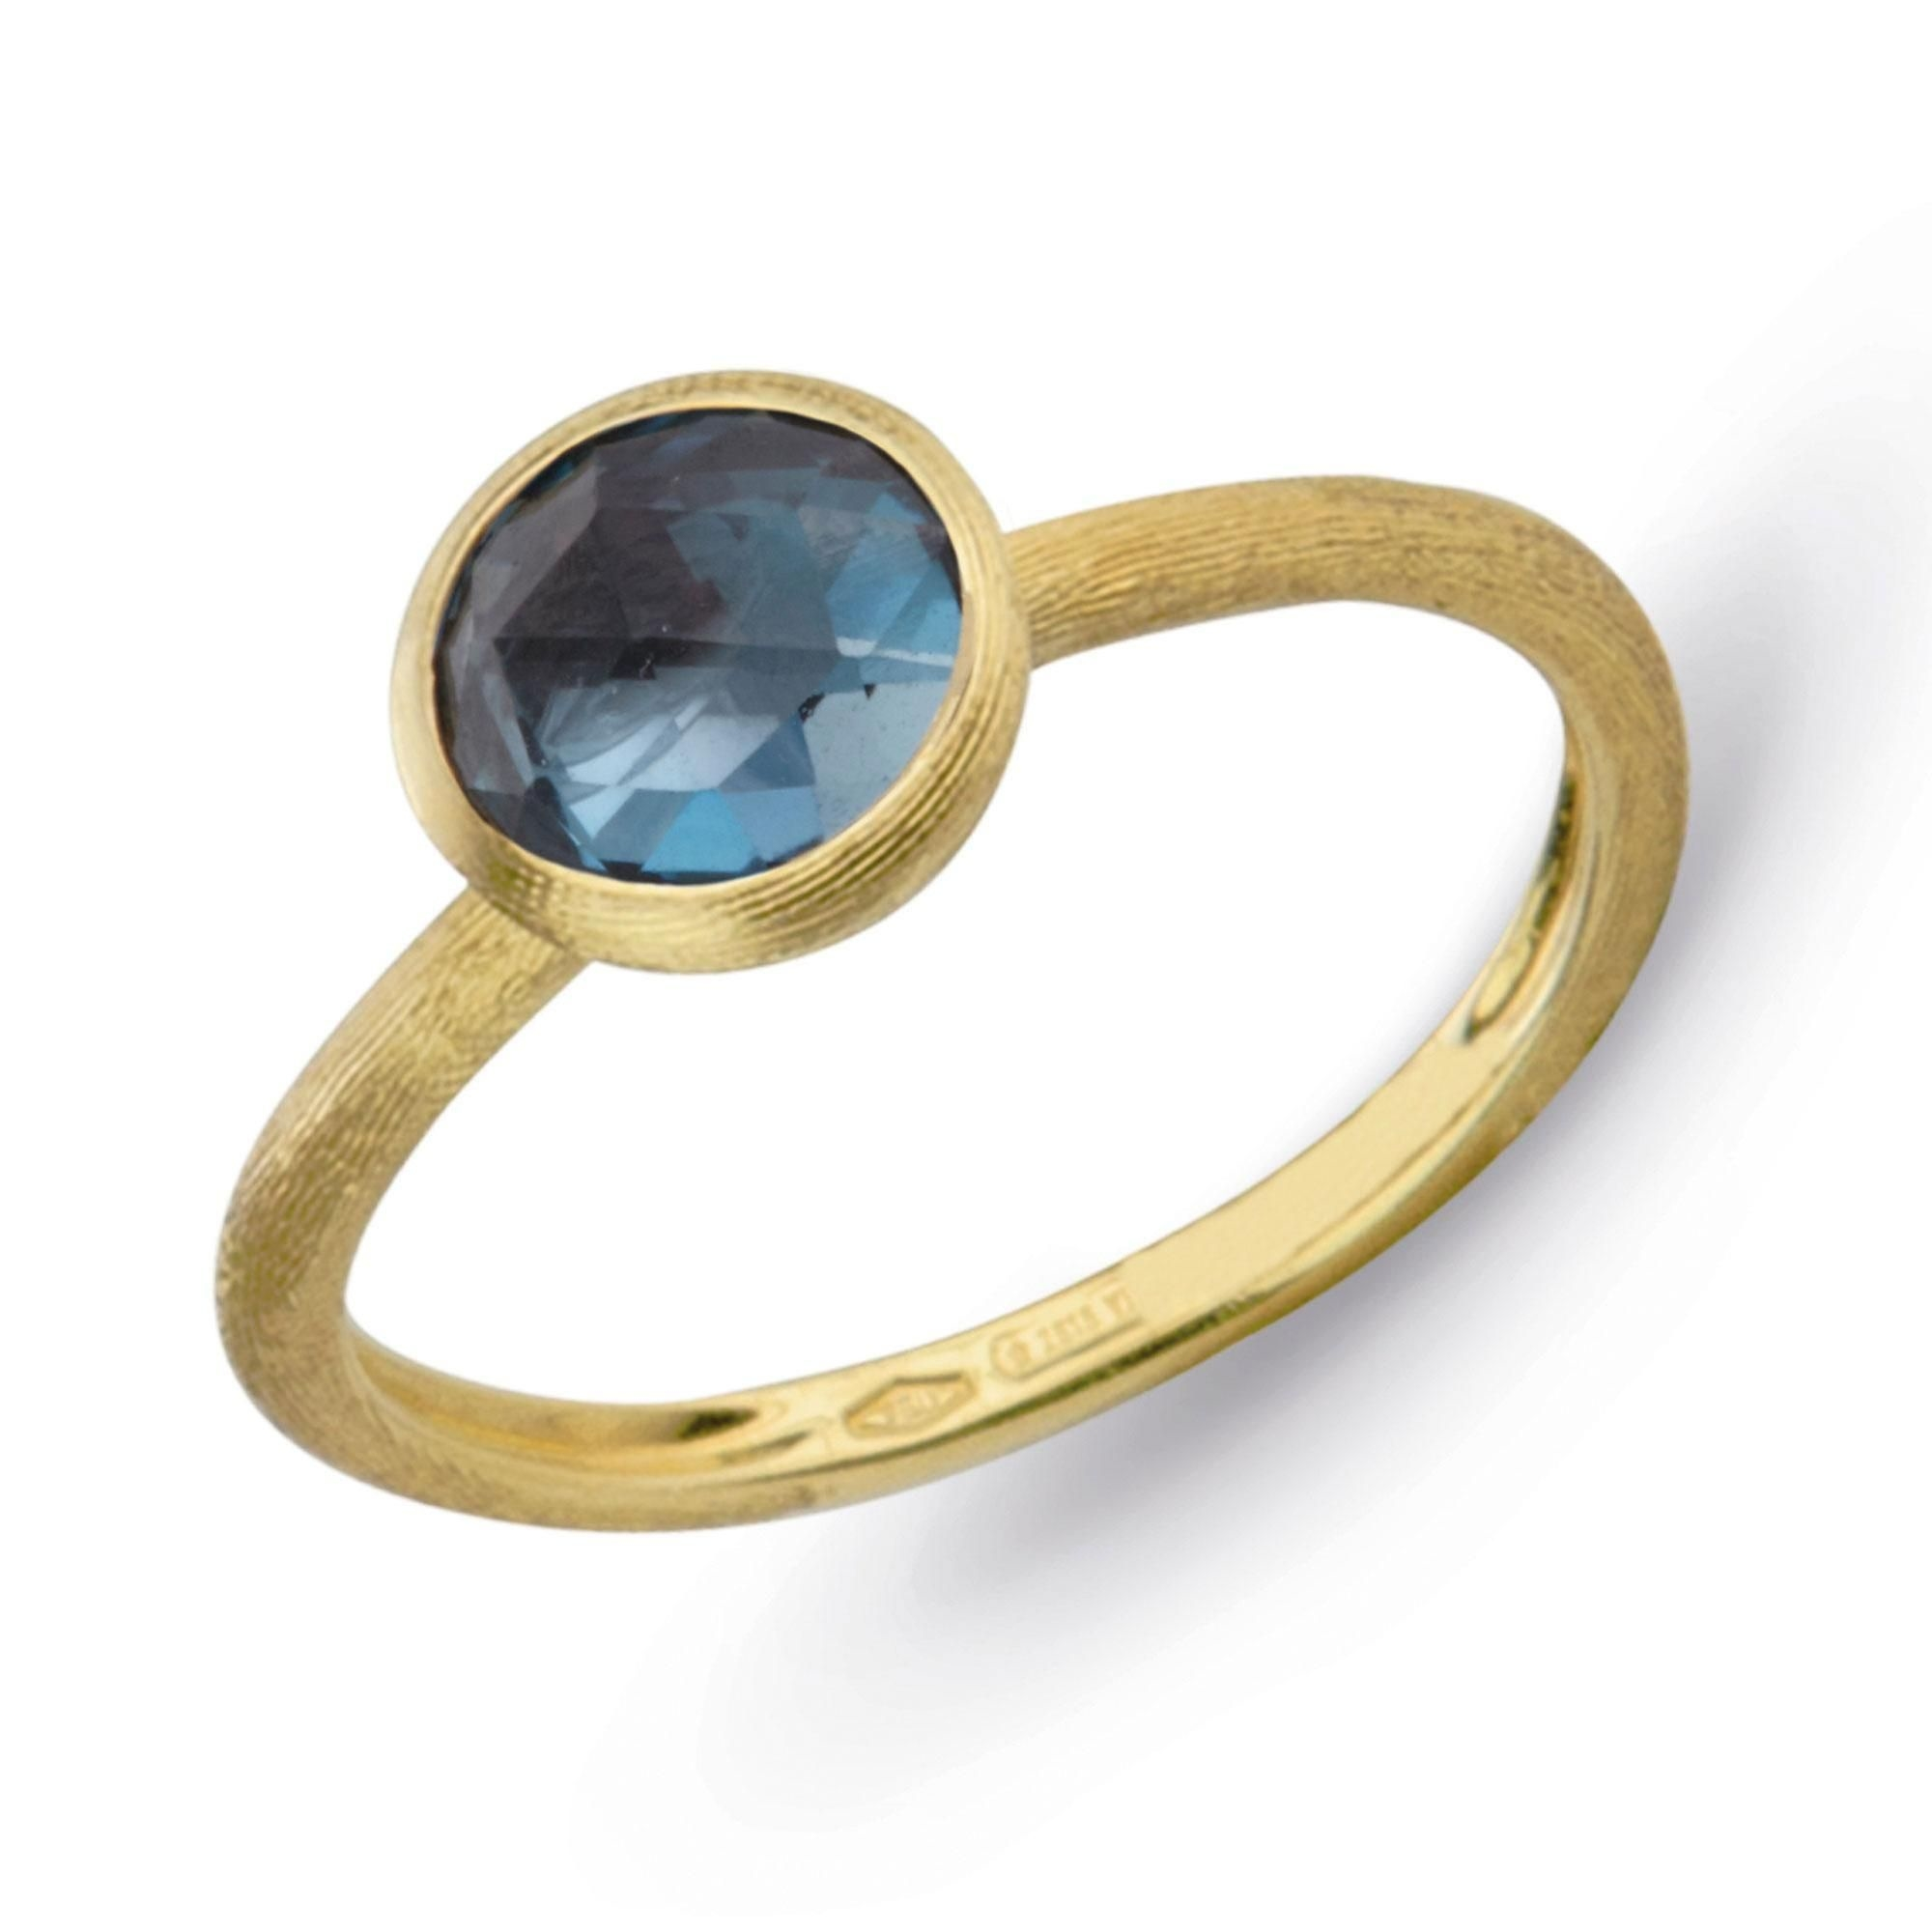 Marco Bicego 18K Yellow Gold  Blue Topaz Gold Ring with Stones AB471-TPL01-Y